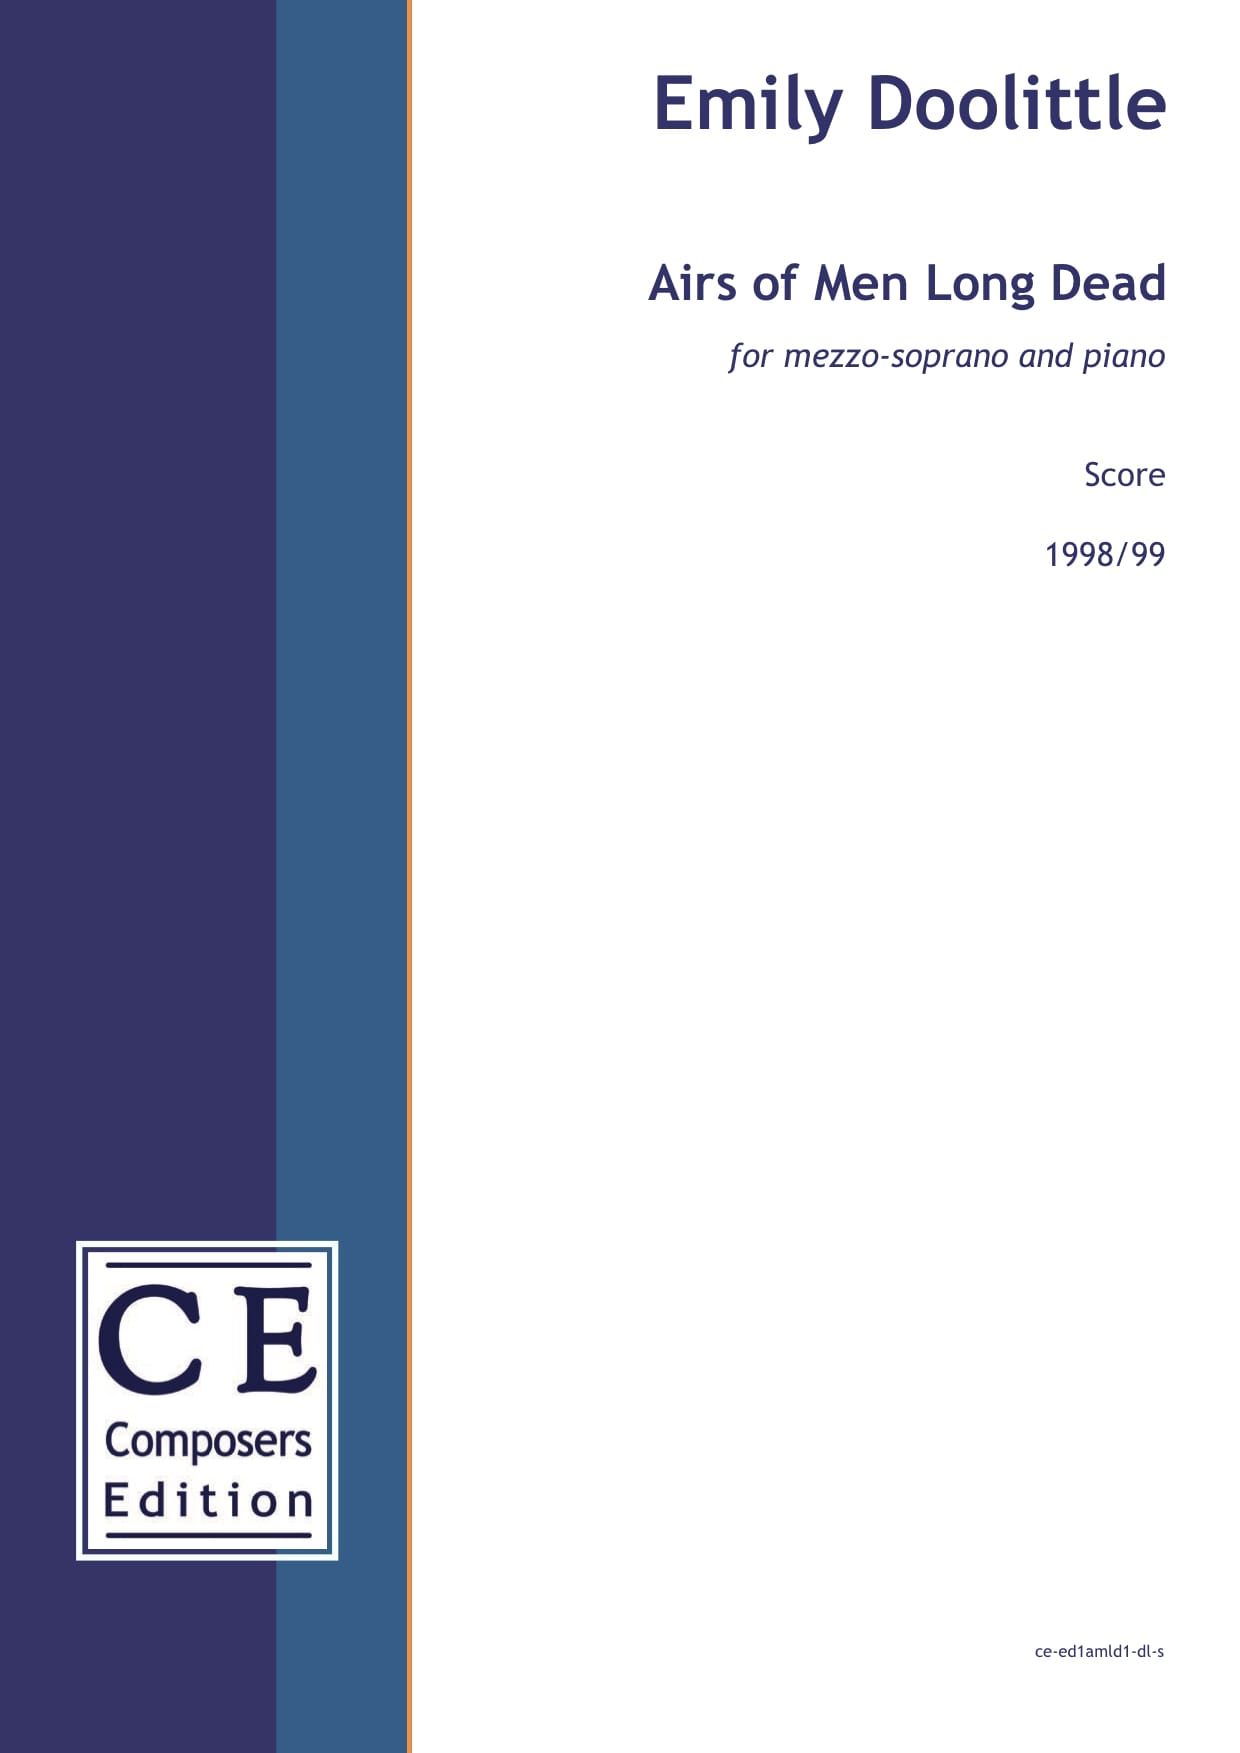 Emily Doolittle: Airs of Men Long Dead for mezzo-soprano and piano